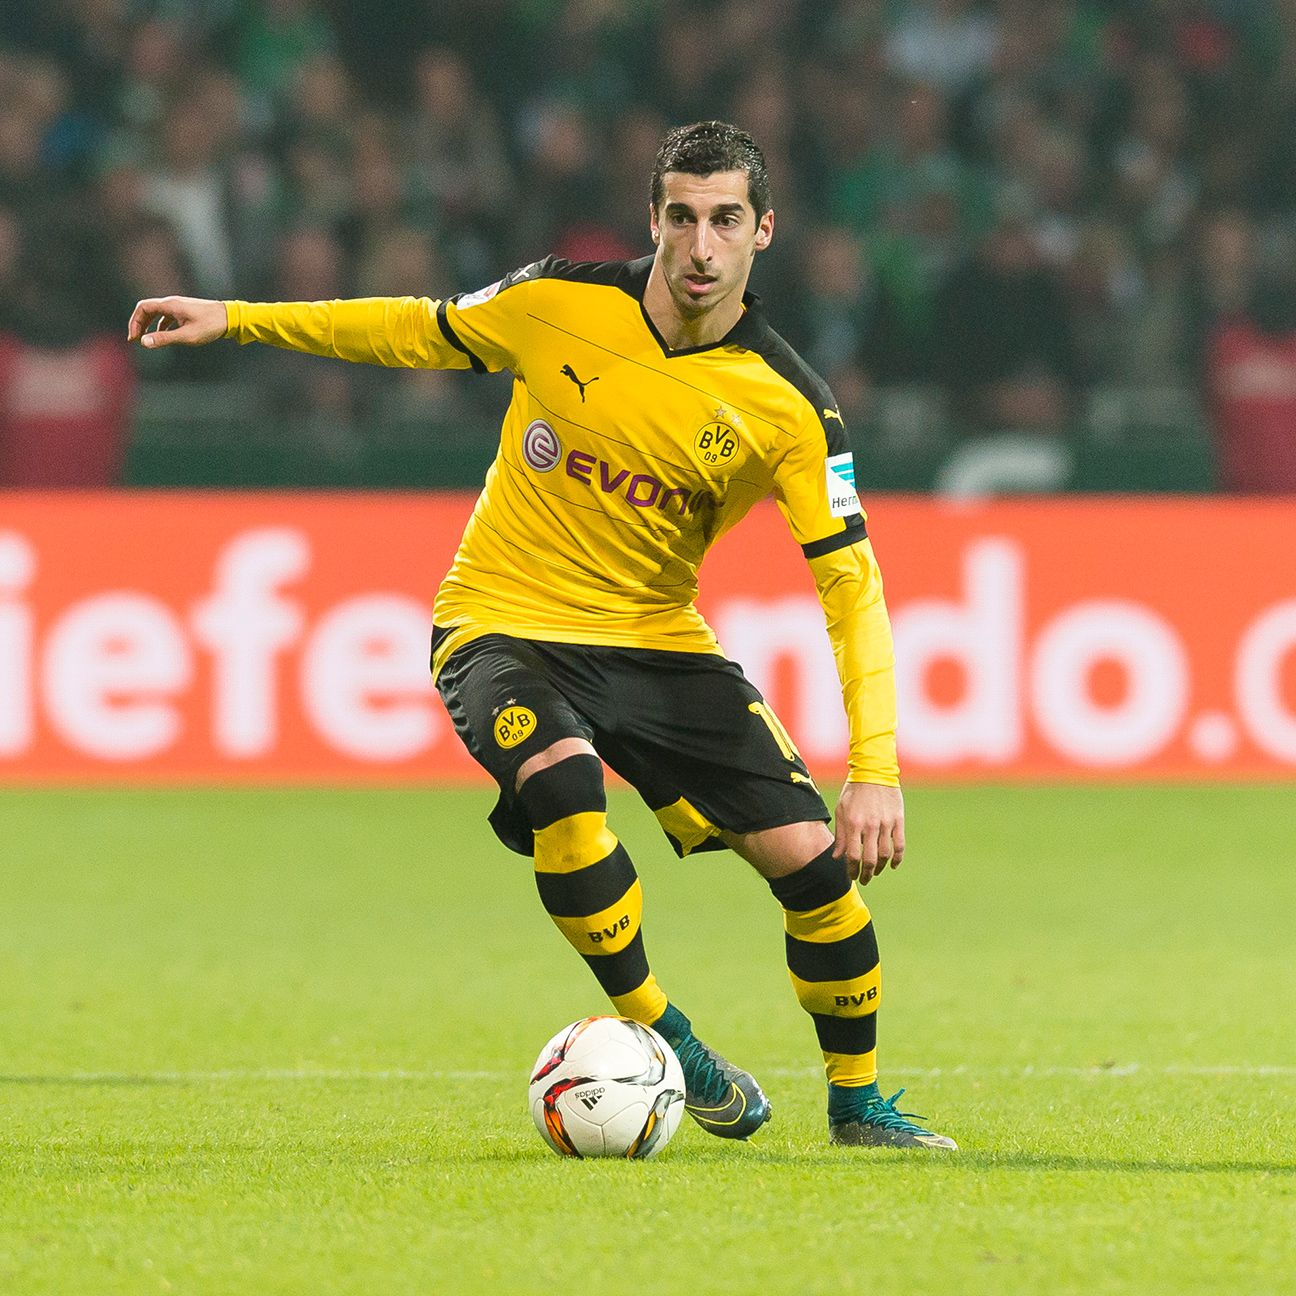 Henrikh Mkhitaryan has three goals in his last three matches for Borussia Dortmund.